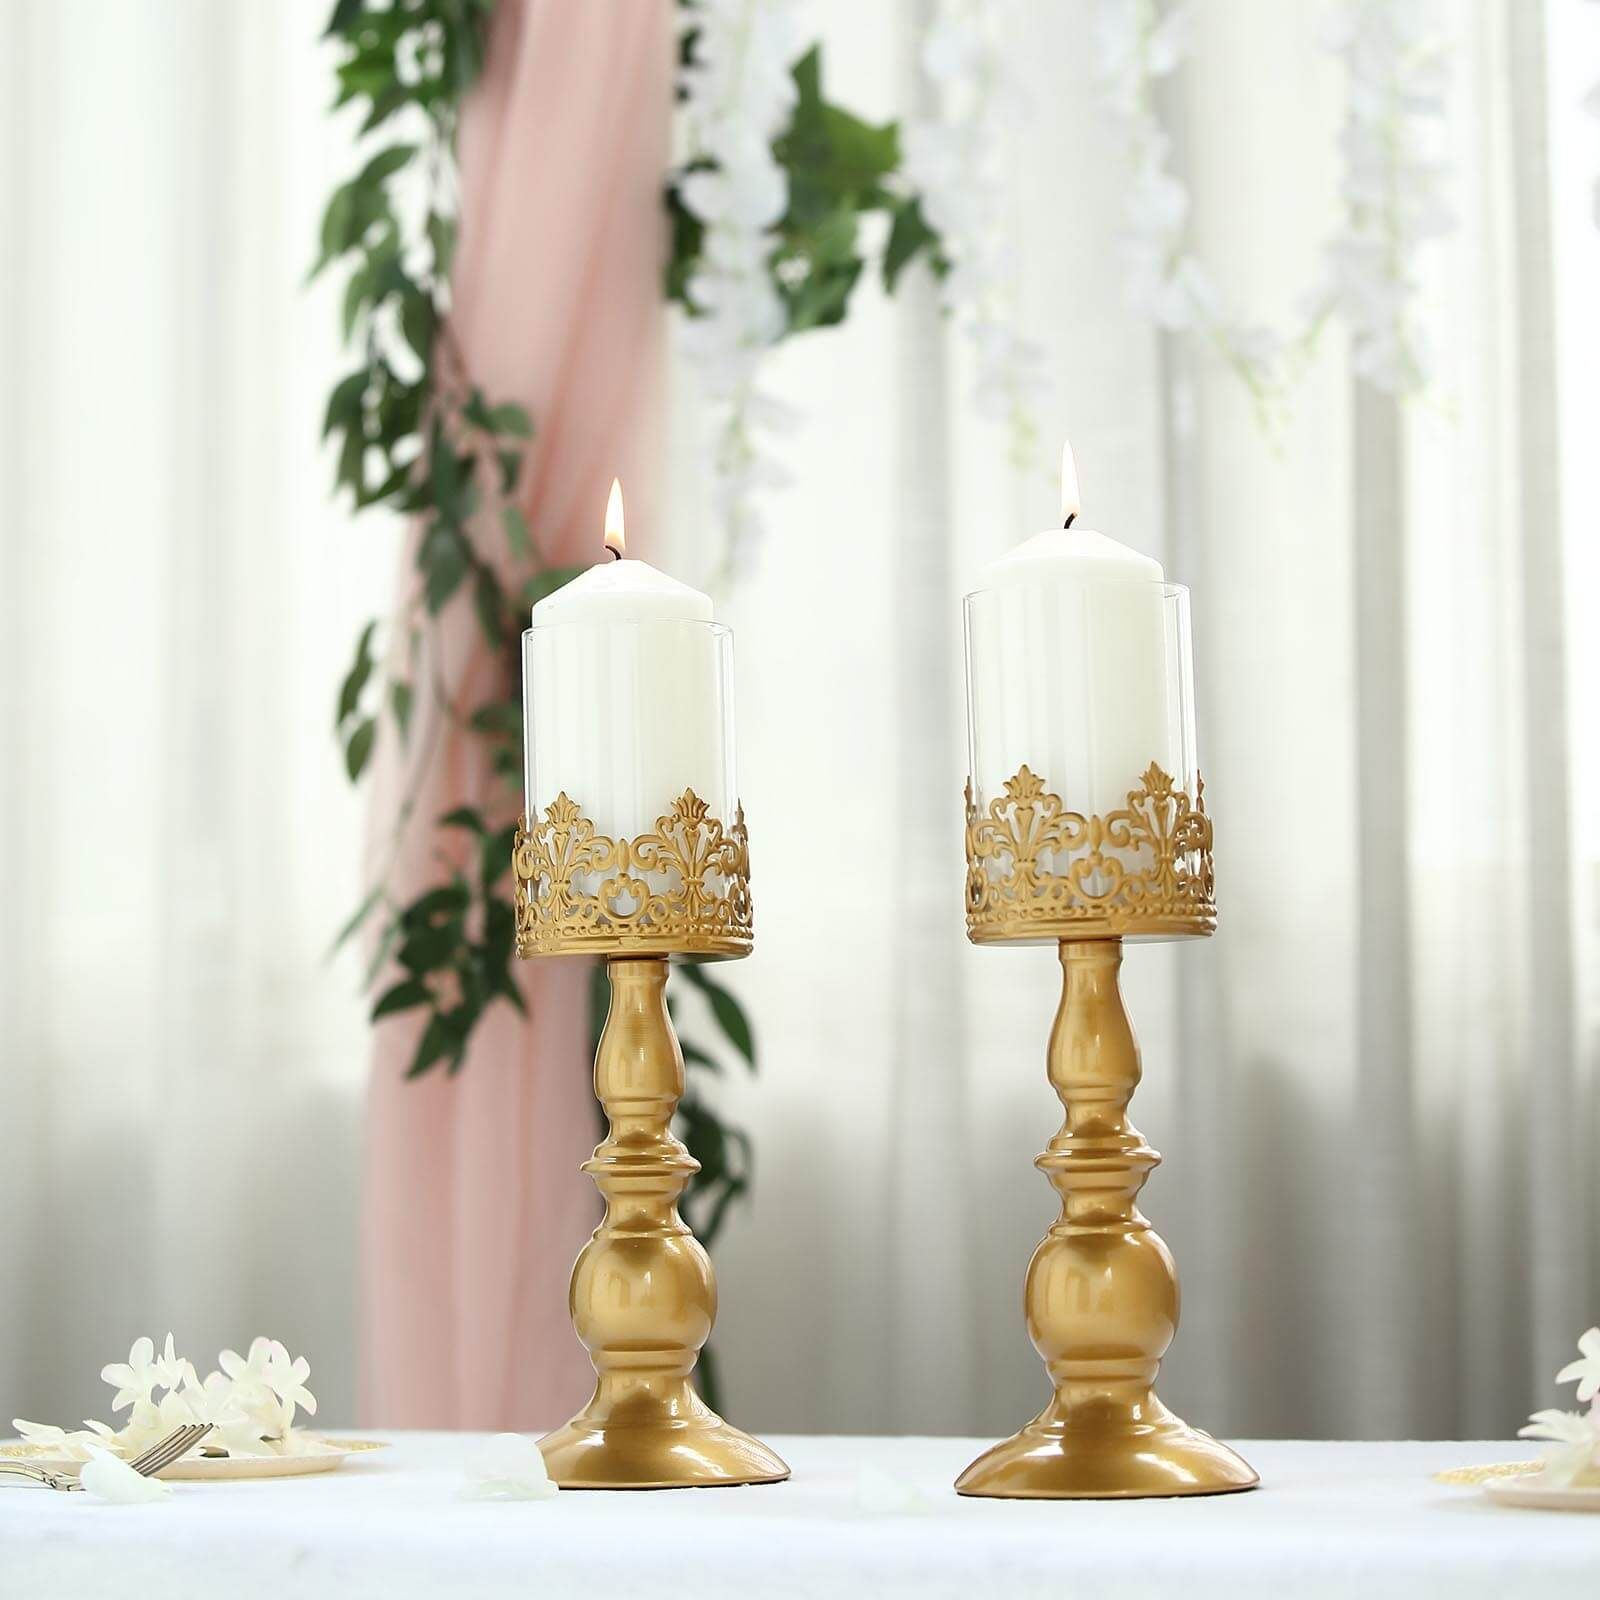 Set Of 2 12 Tall Lace Design Gold Amber Hurricane Glass Candle Holder Set With Glass Tube In 2021 Glass Hurricane Candle Holder Glass Candle Holders Candle Holders